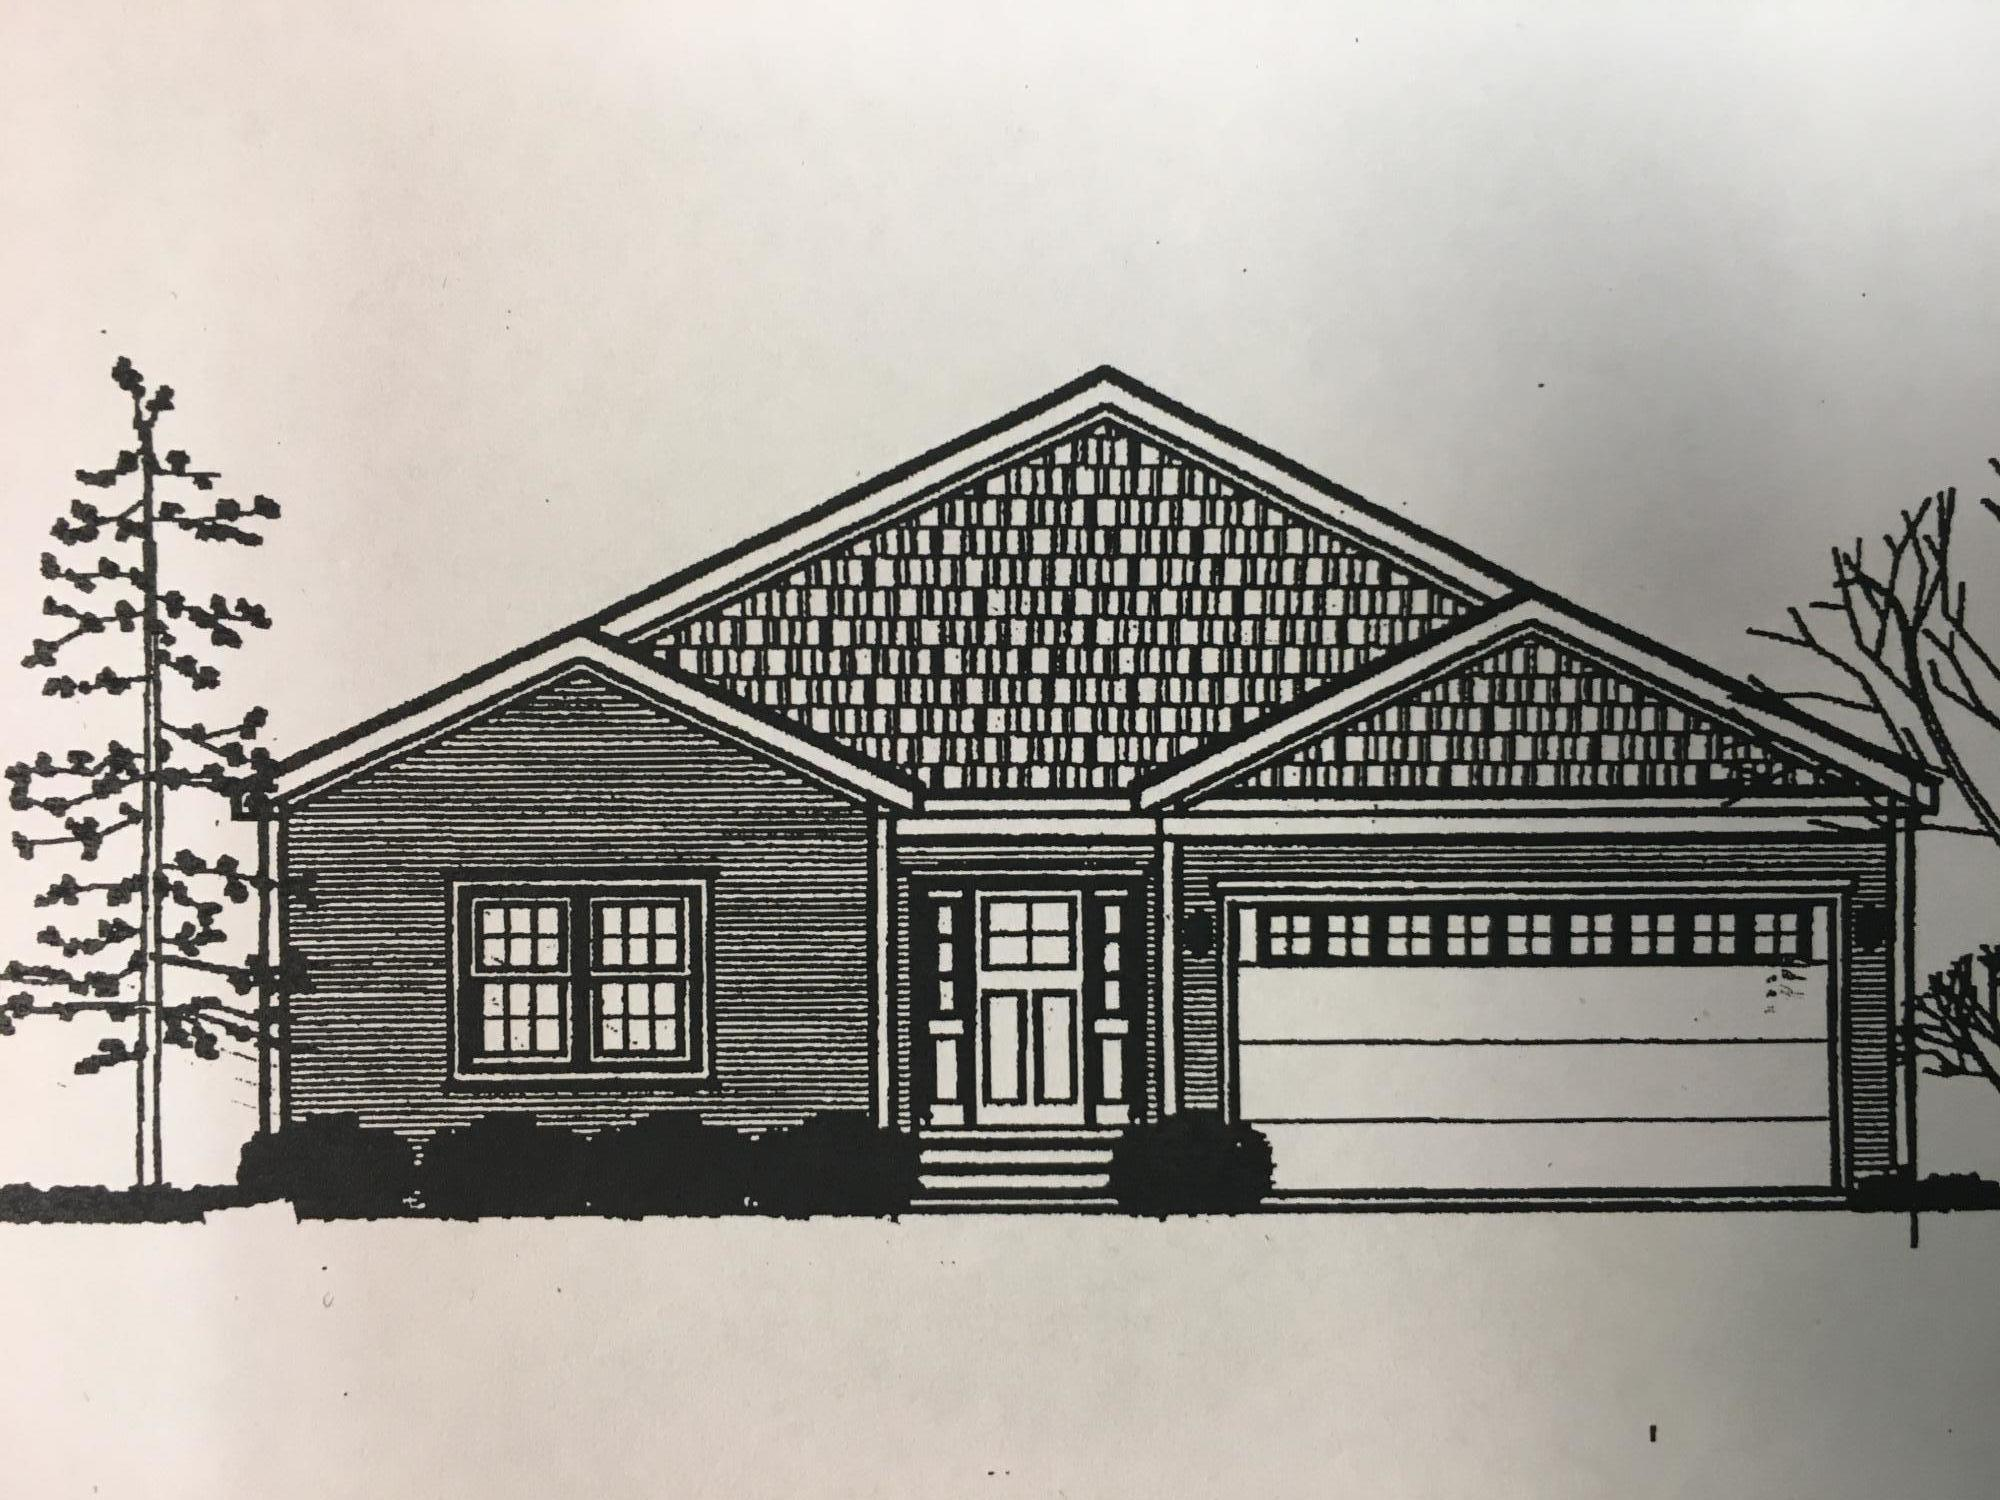 Main image for MLS listing 1485689